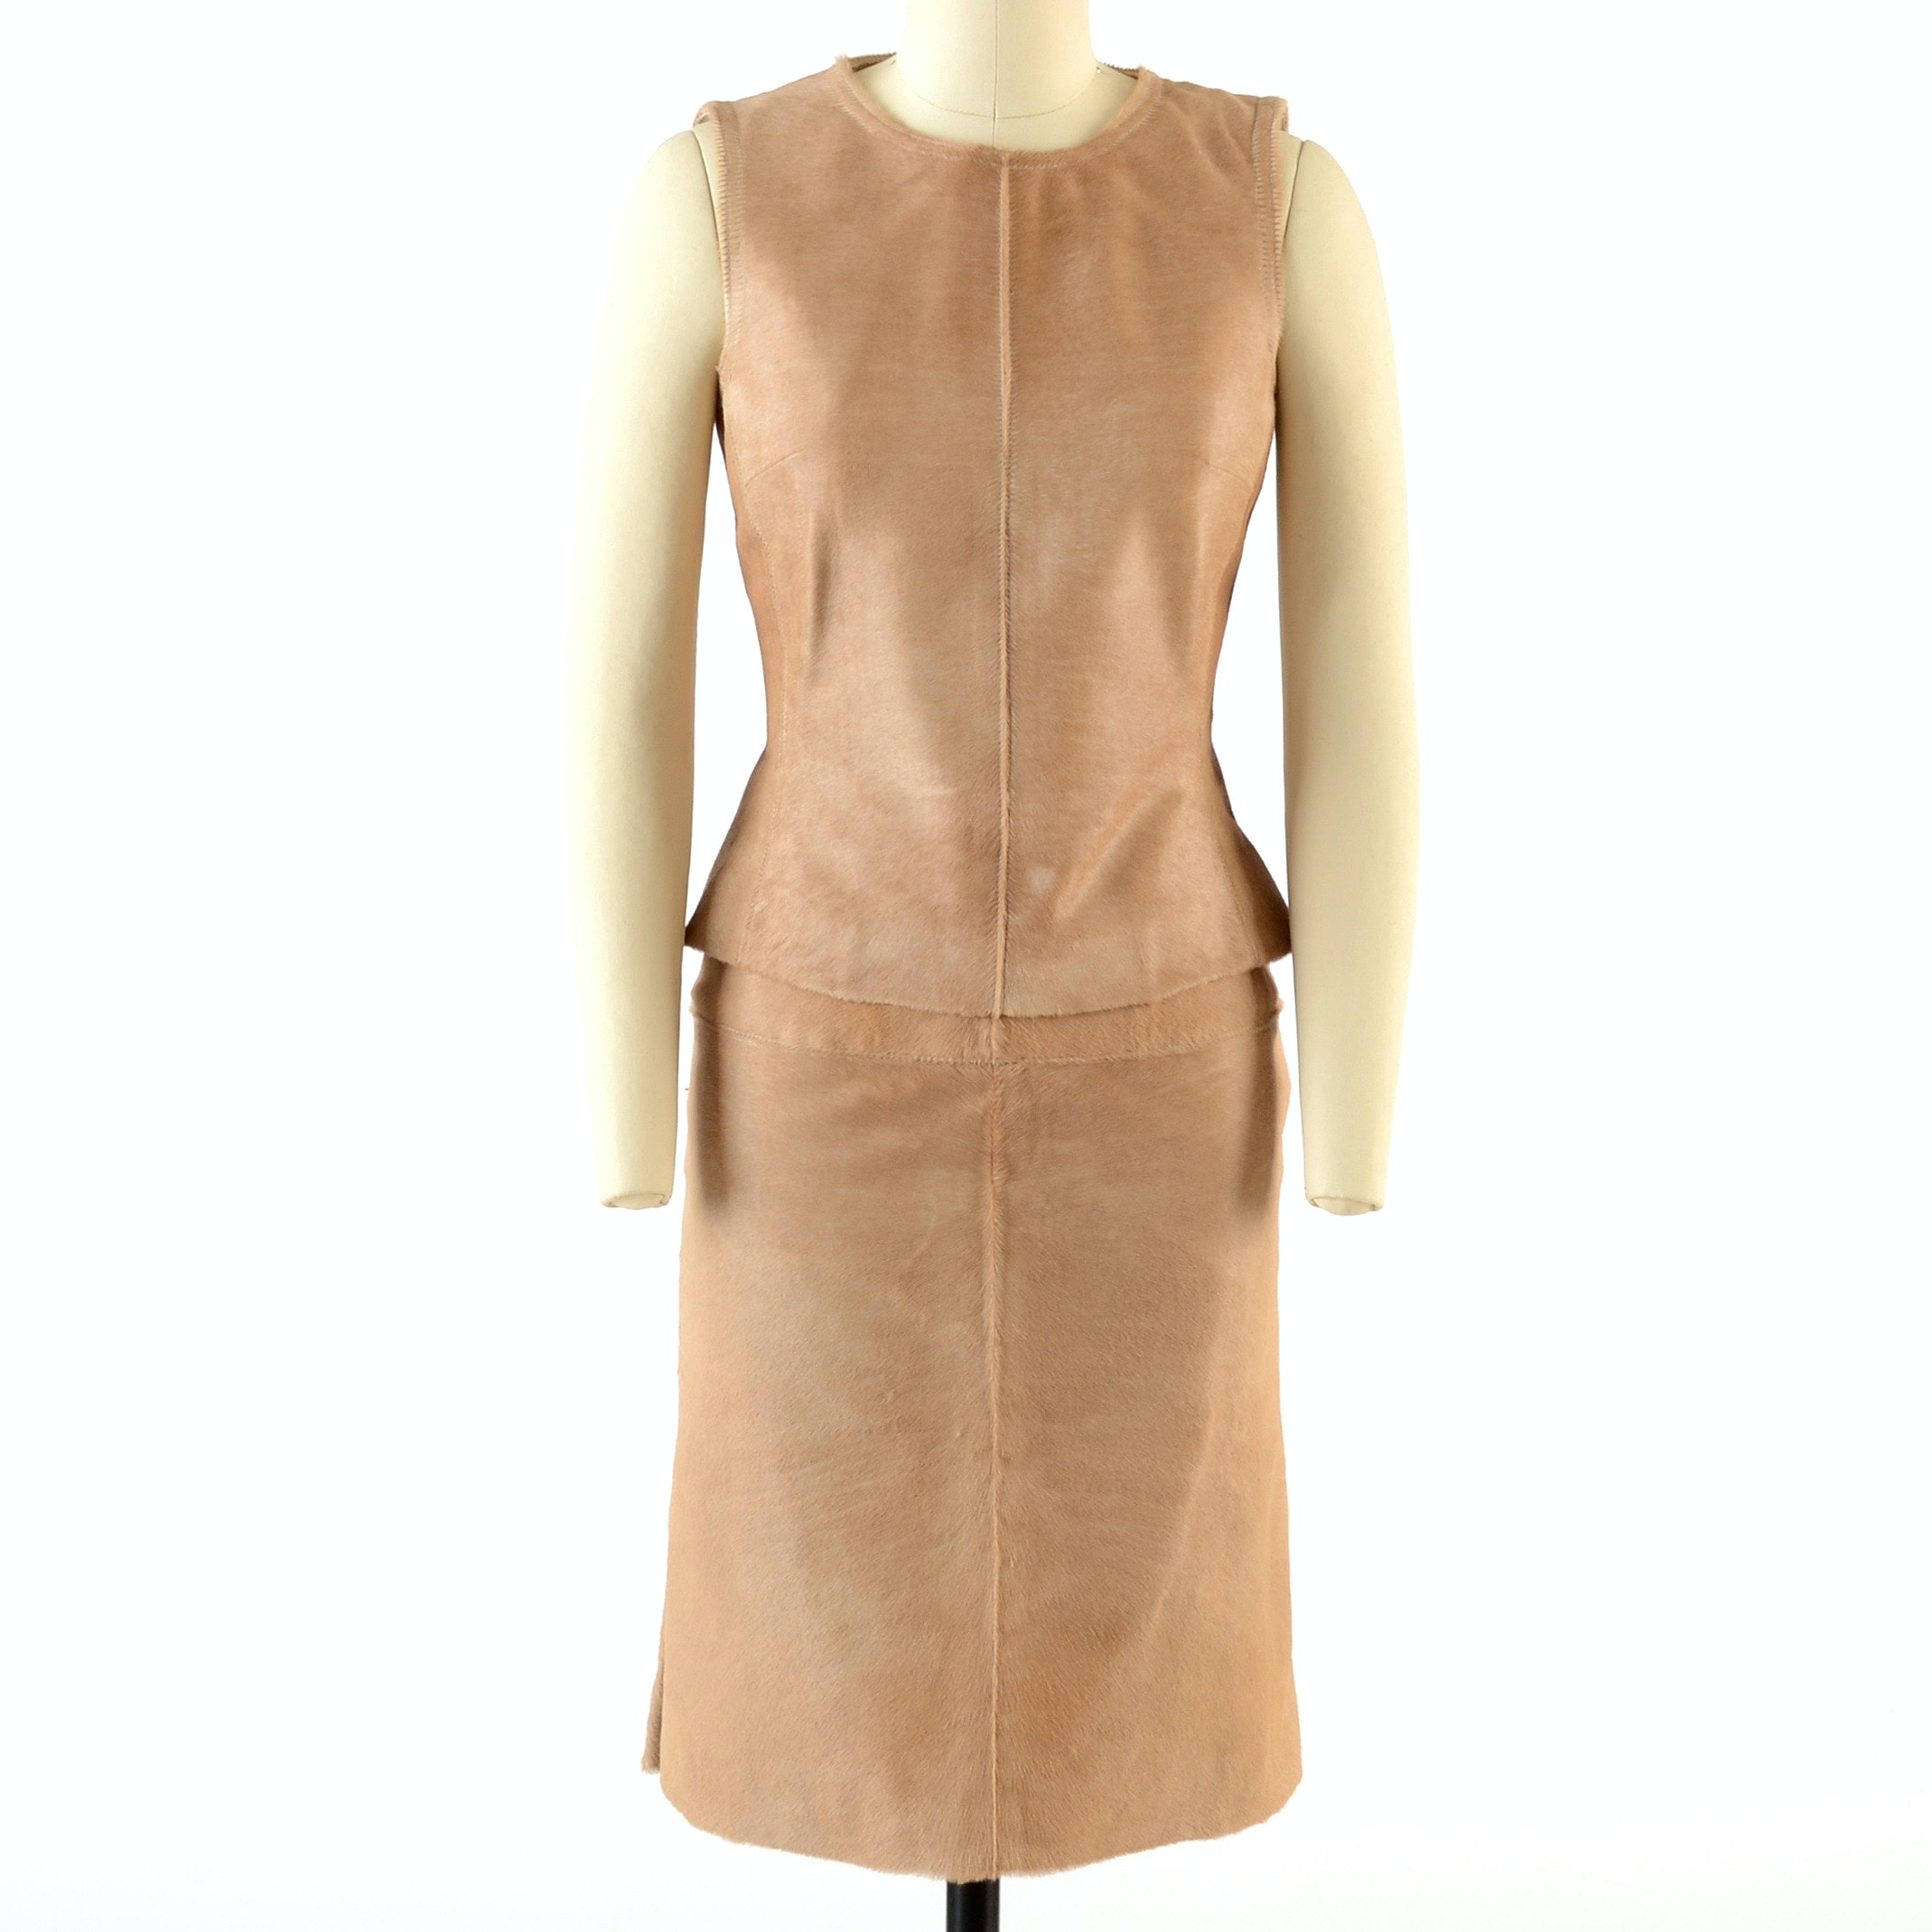 J. Mendel of Paris Ponyskin Leather Sleeveless Top and Matching Skirt